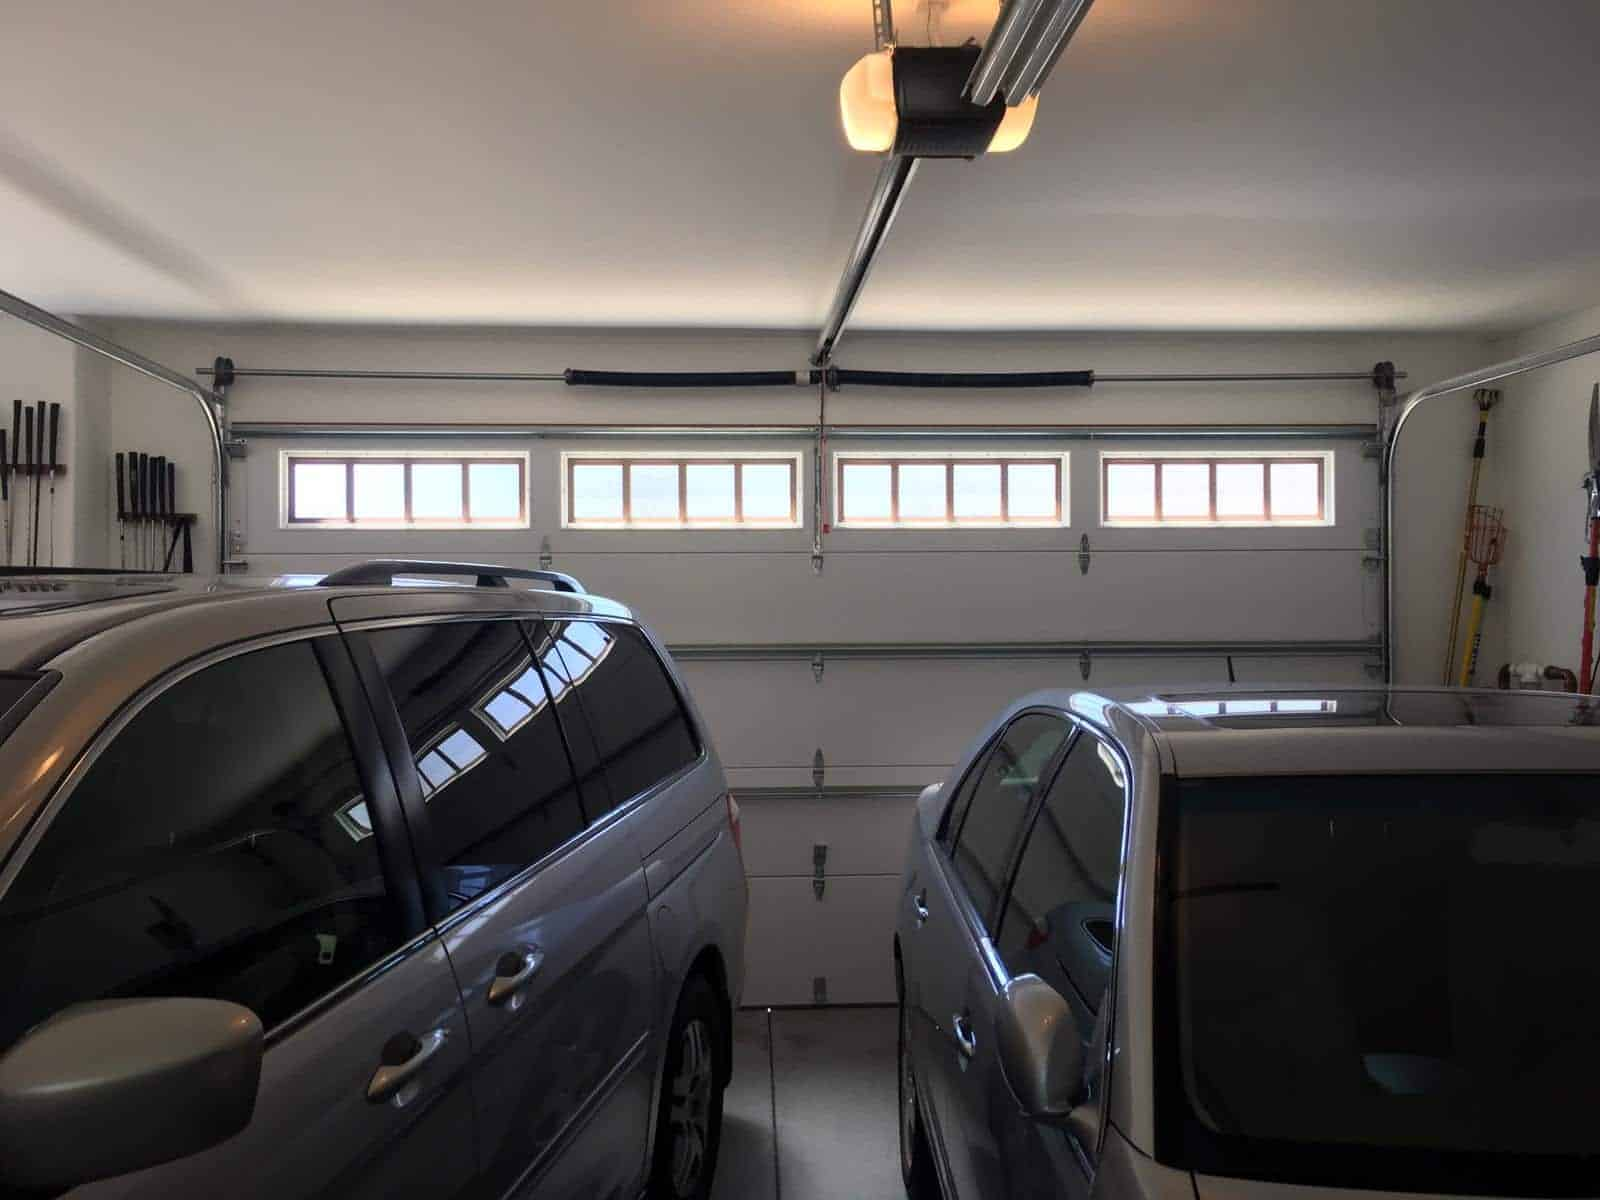 Silverlake CA Garage Door Repair & Replacement